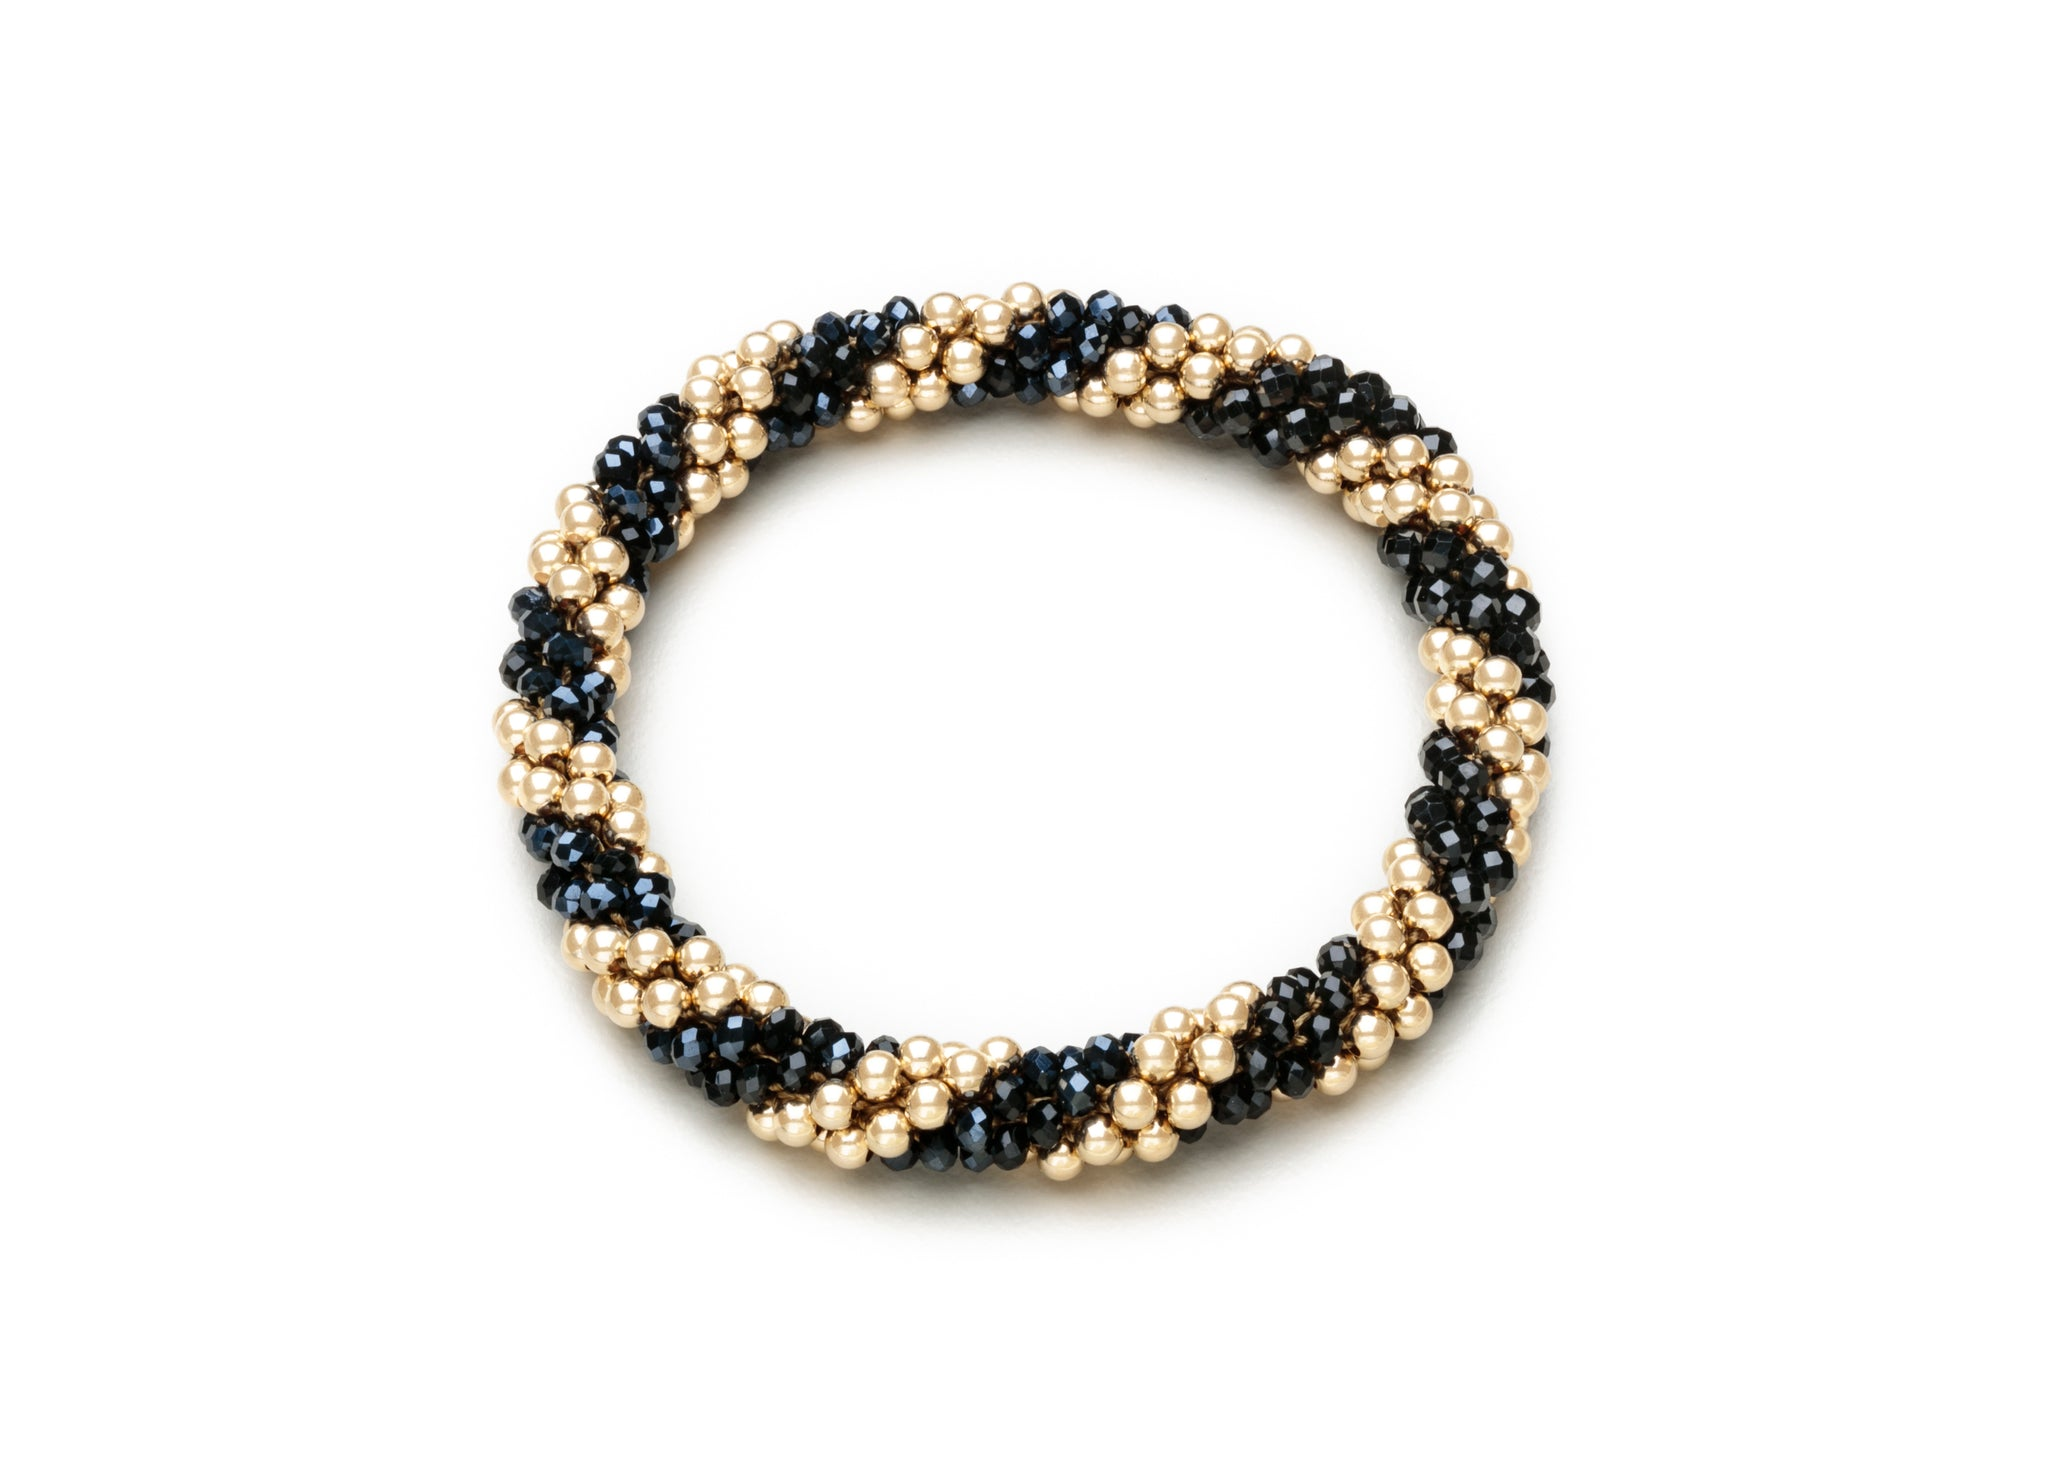 3mm Cluster Bracelets, Crystal Spiral and Accents (Click to View All)